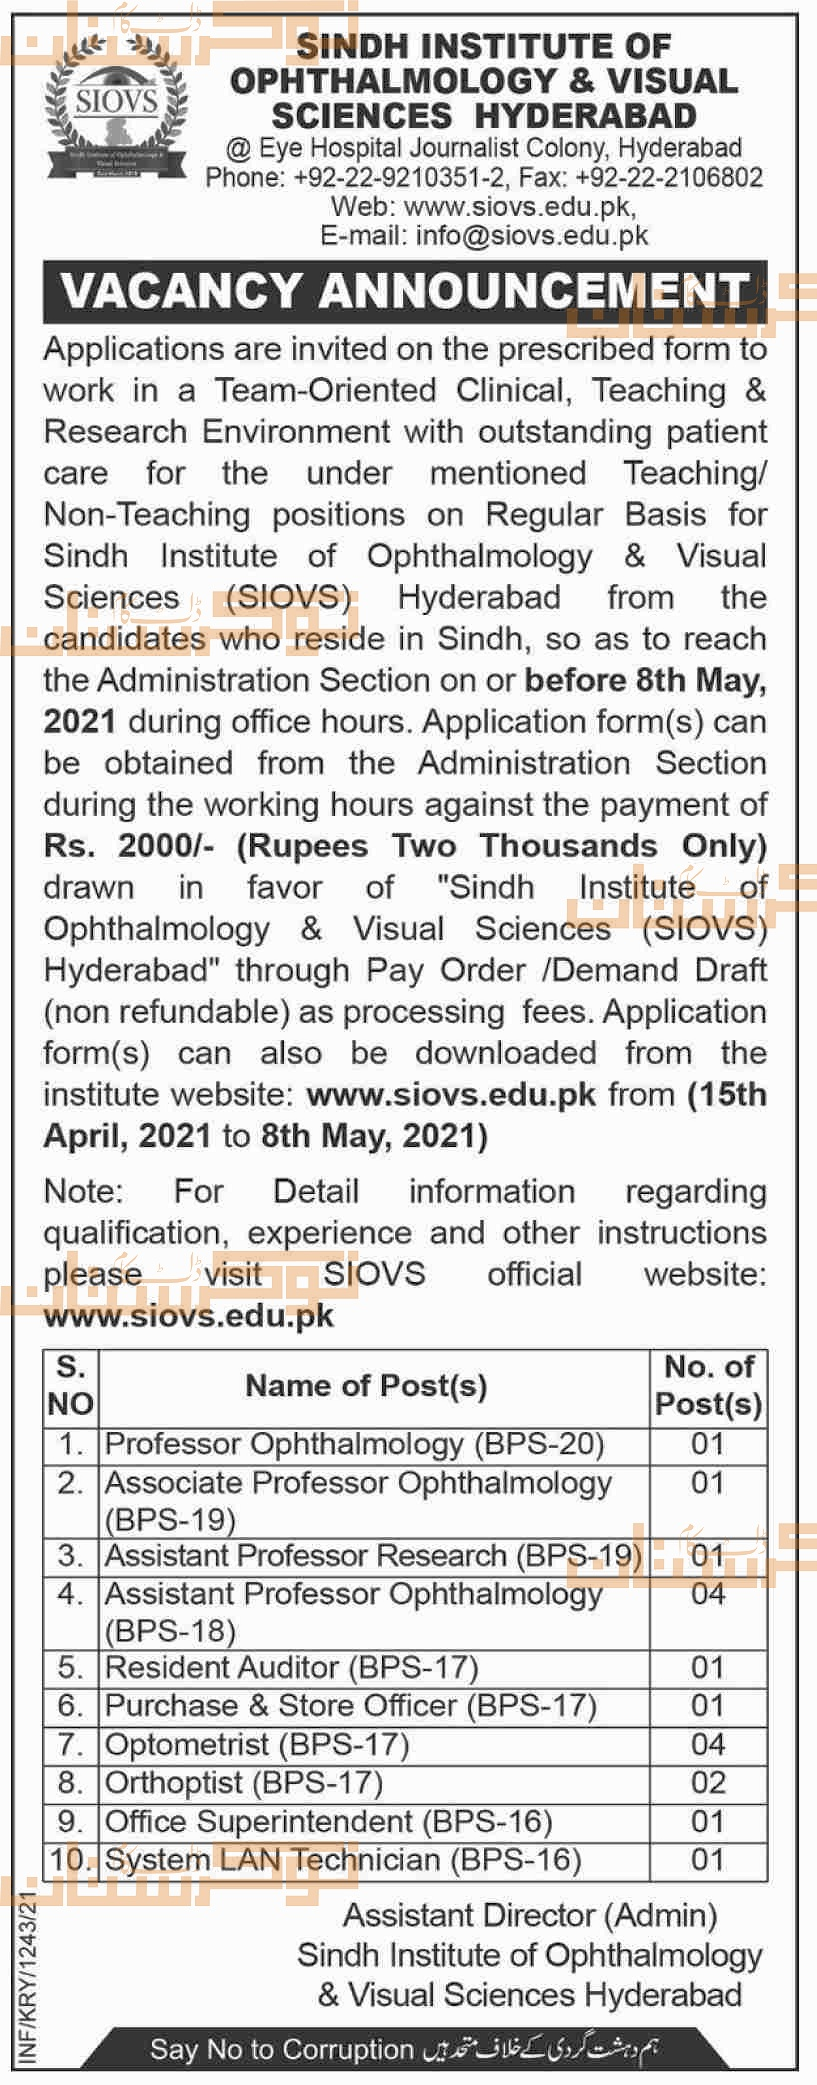 government,sindh institute of opthalmology & visual sciences hyderabad,professor, associate professor, resident auditor, purchase and store officer, optometrist, orthoptist, office superintendent, system lan technician,latest jobs,last date,requirements,application form,how to apply, jobs 2021,